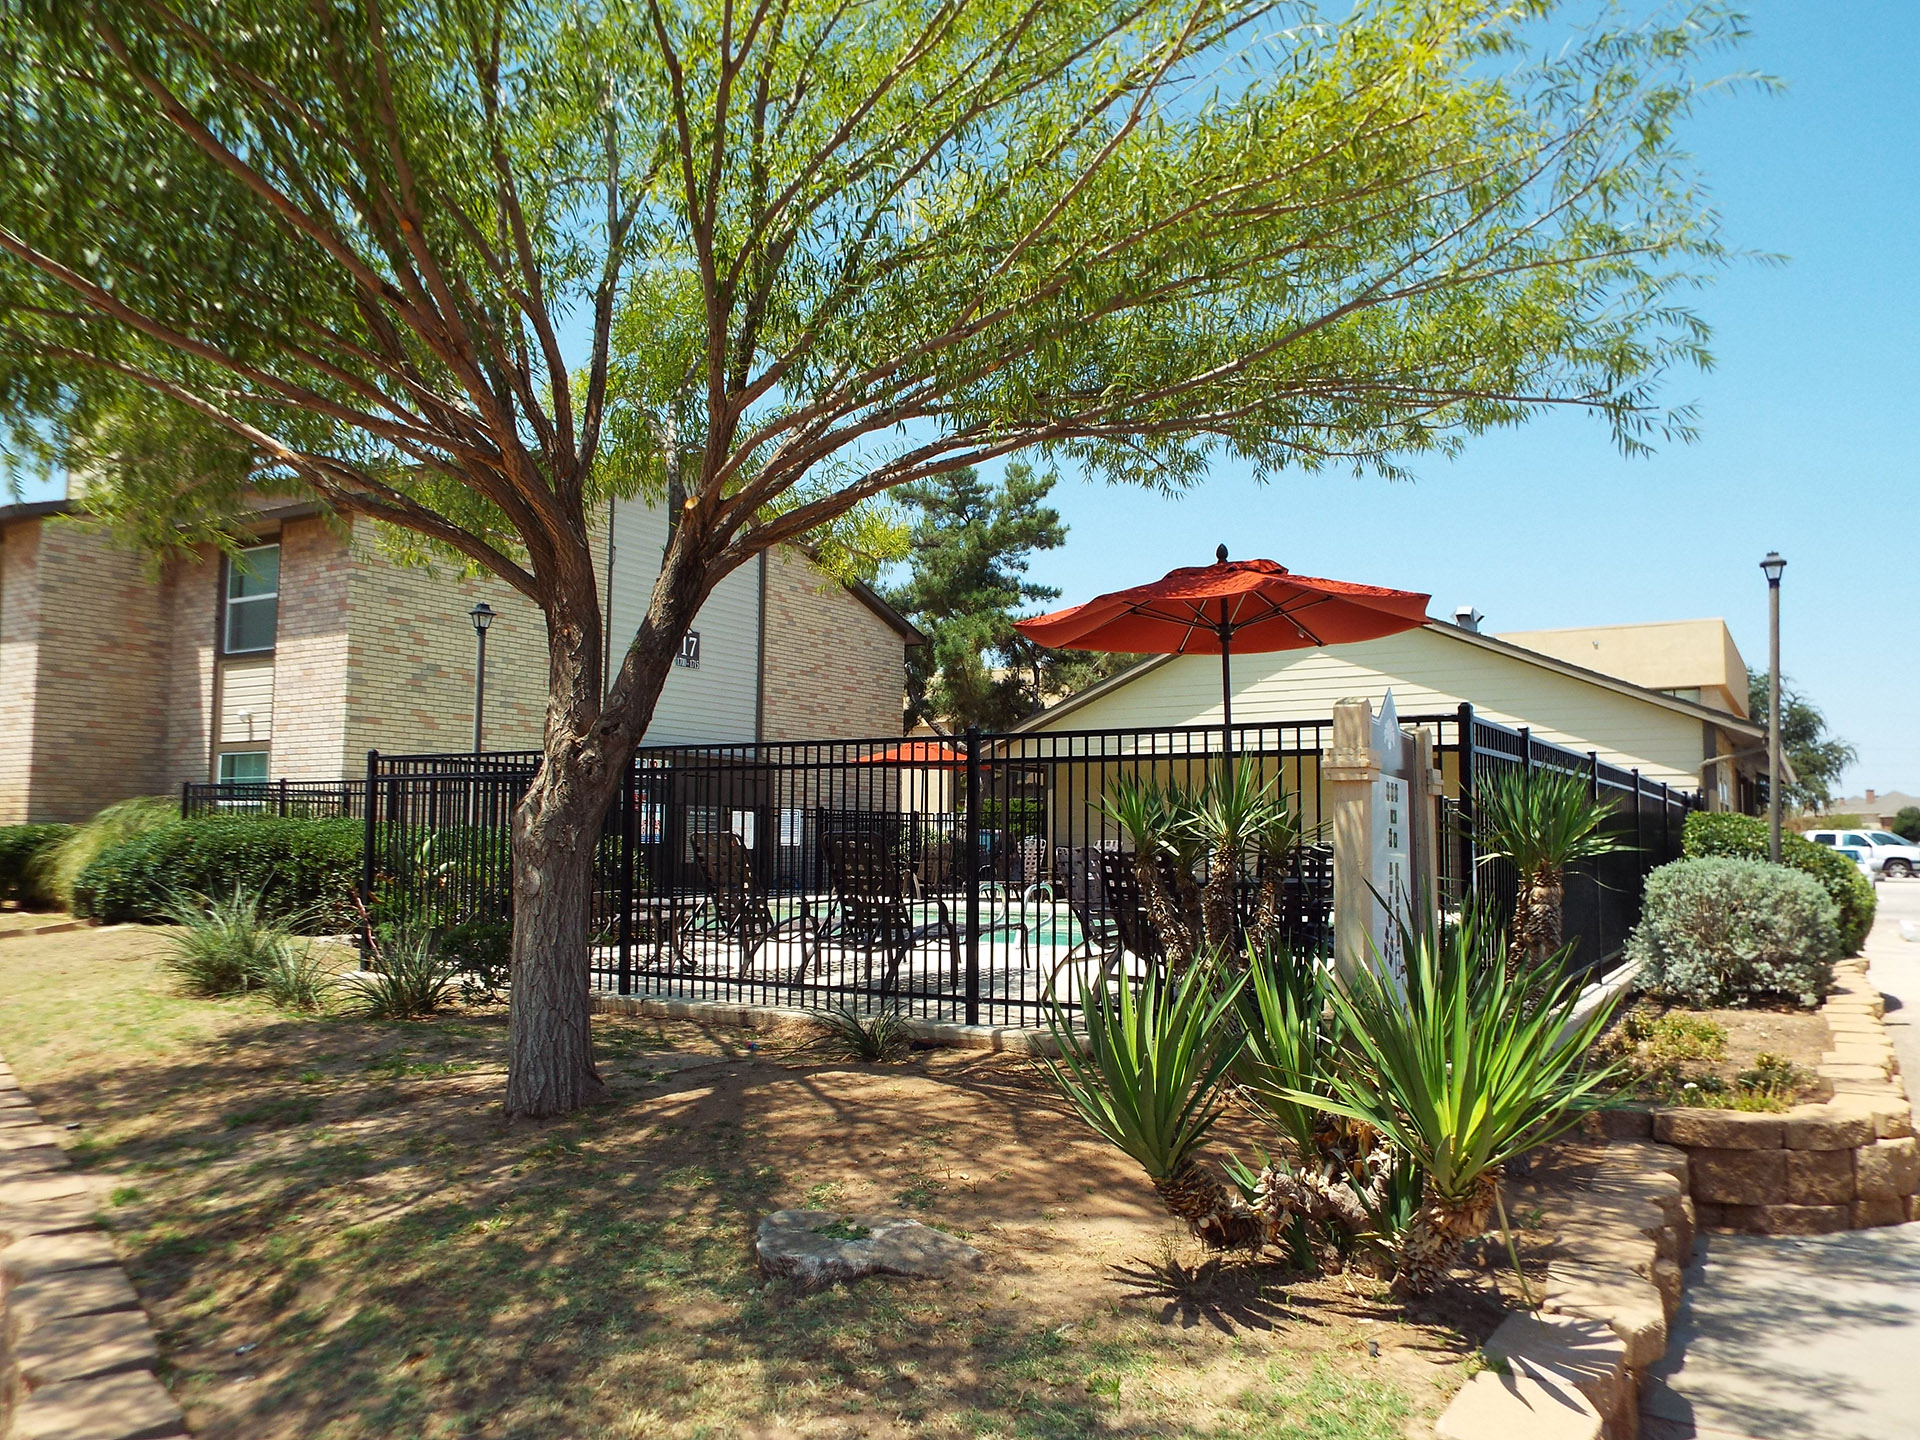 Beautiful Landscaping And Park Like Setting At University Gardens, Odessa,  TX, 79761 Idea